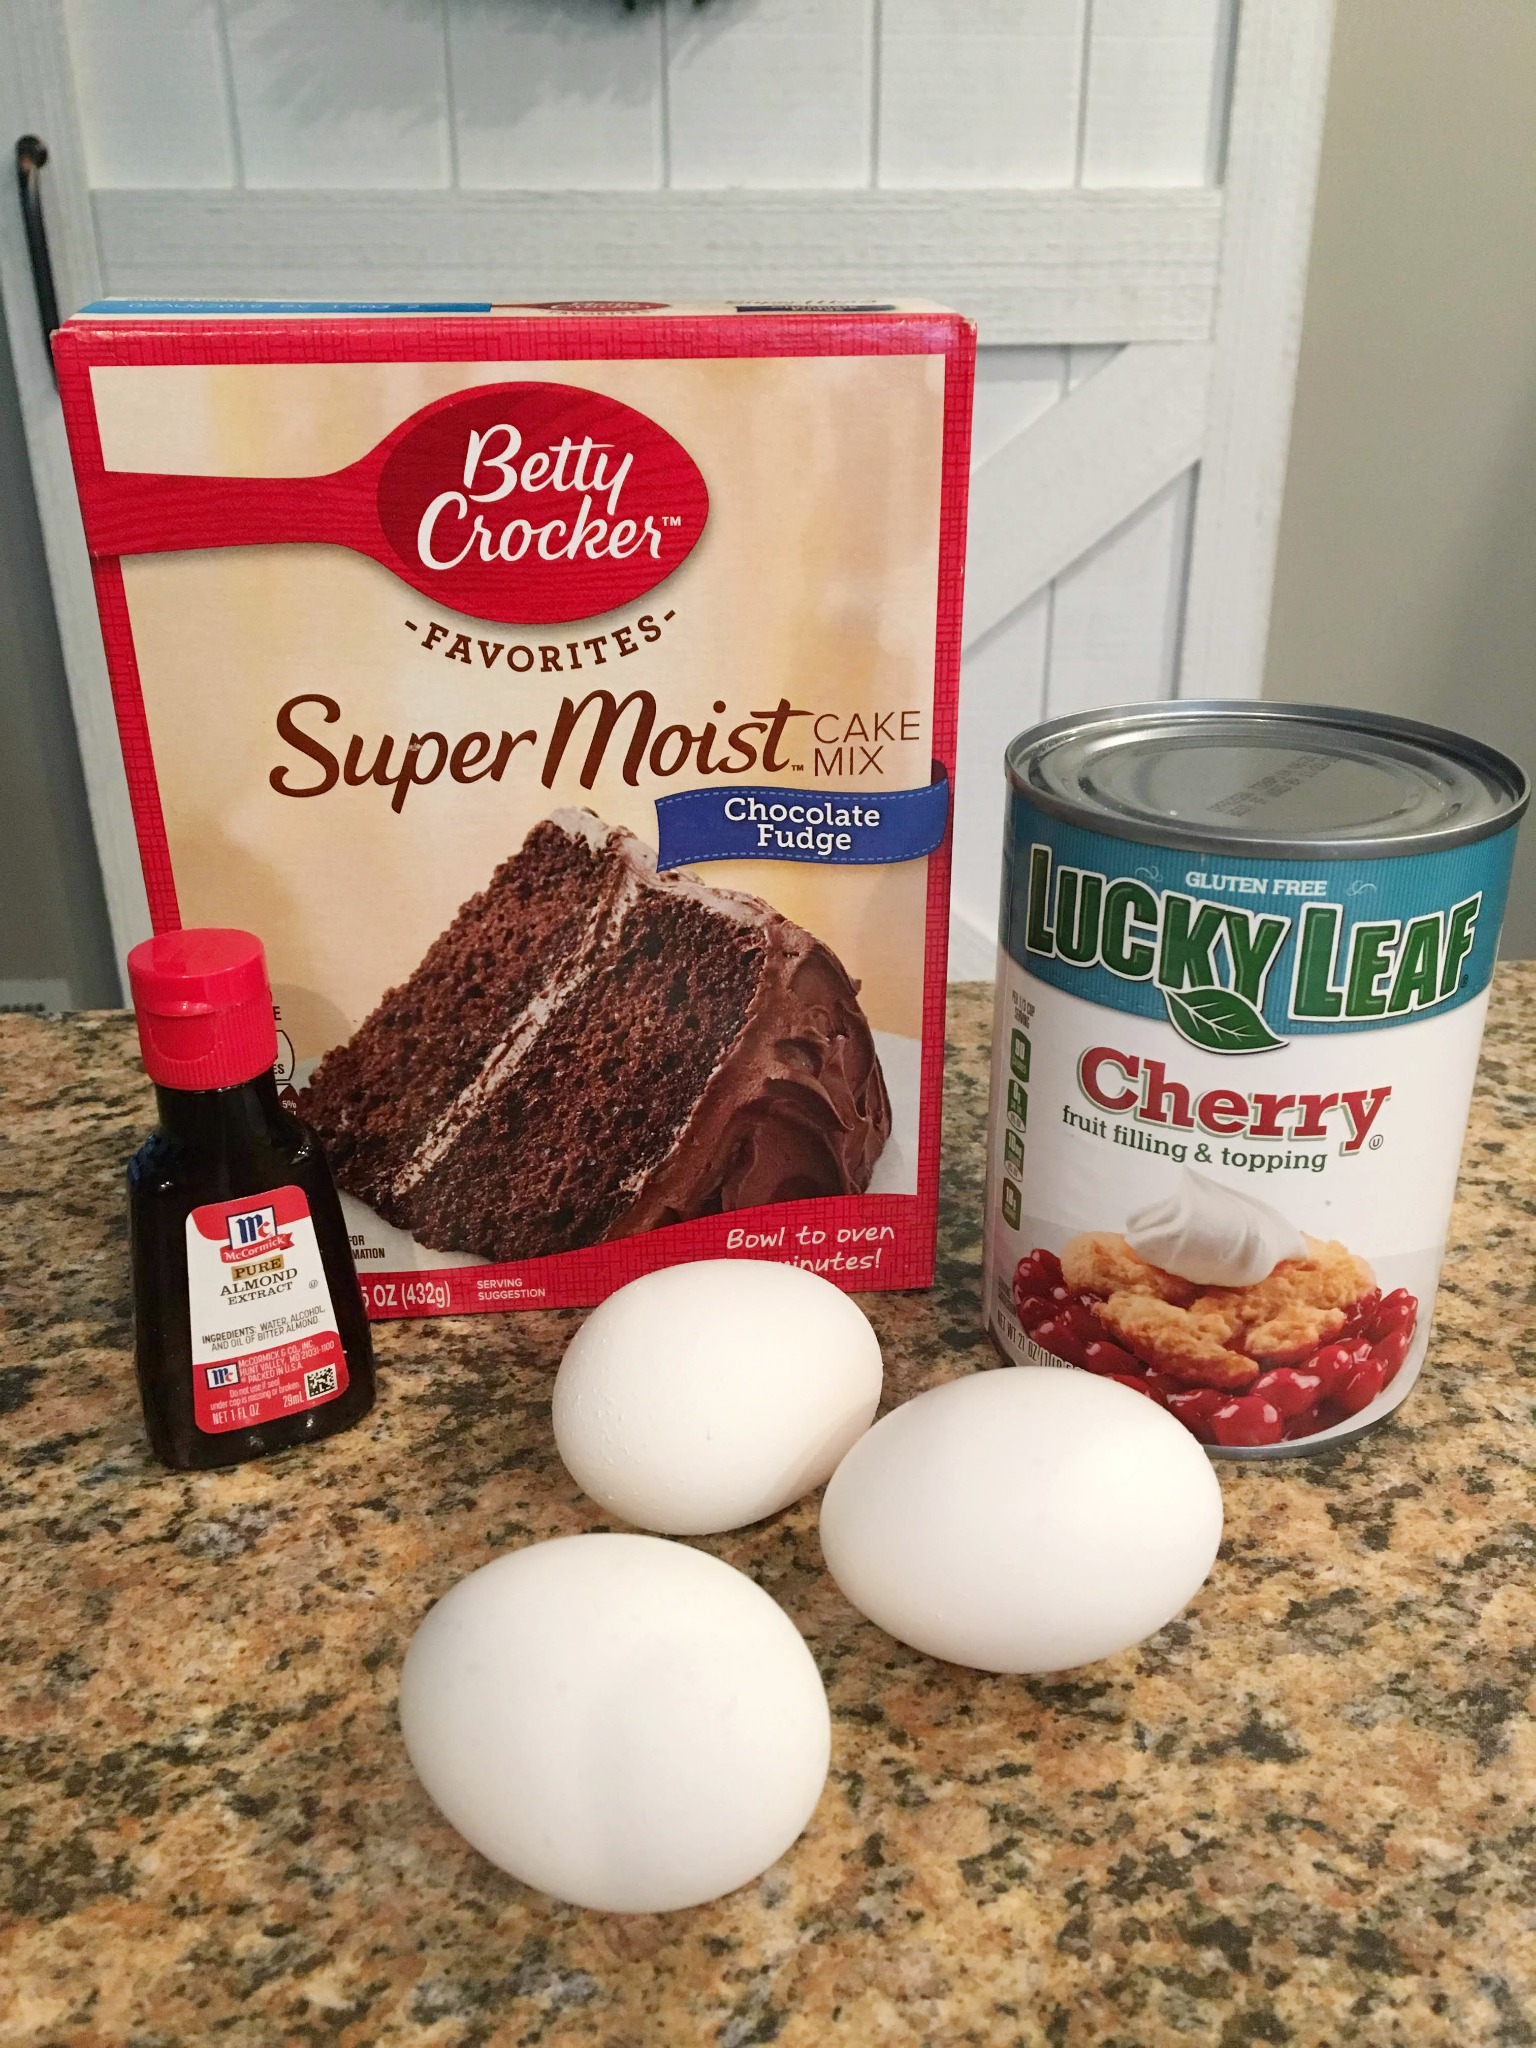 ingredients for chocolate cherry cake on the counter: a box of cake mix, a can of cherry pie filling, 3 eggs and a bottle of almond extract